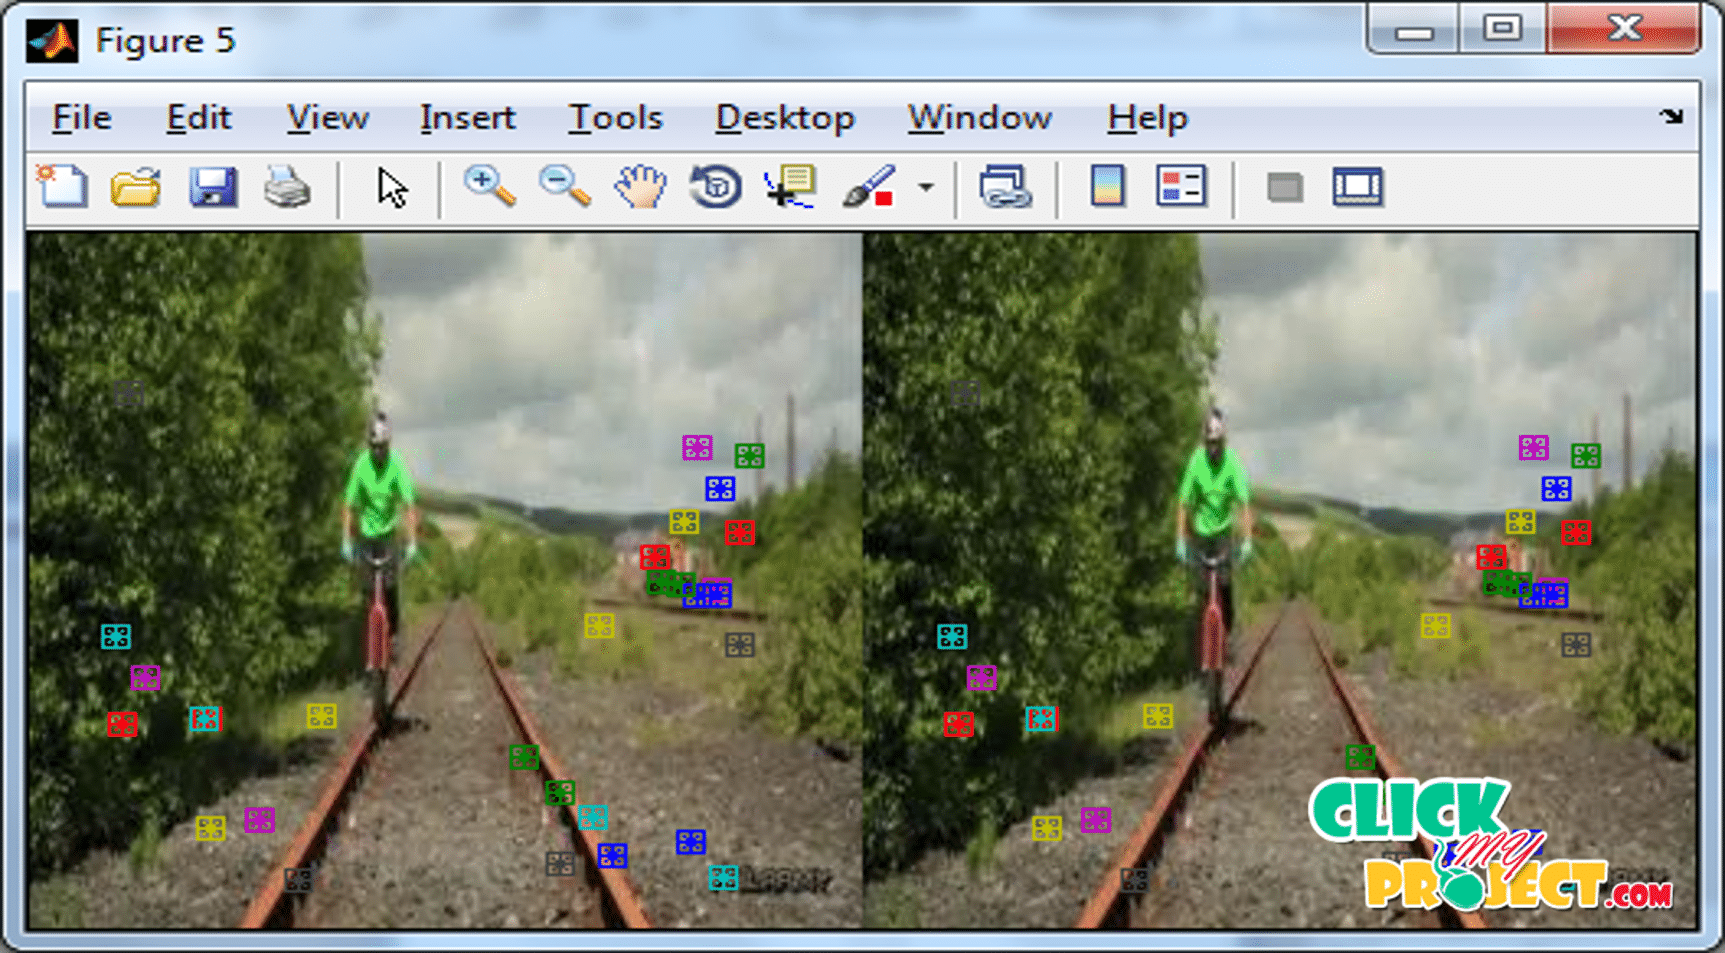 W-Tree Indexing for Fast Visual Word Generation | 2015 Projects